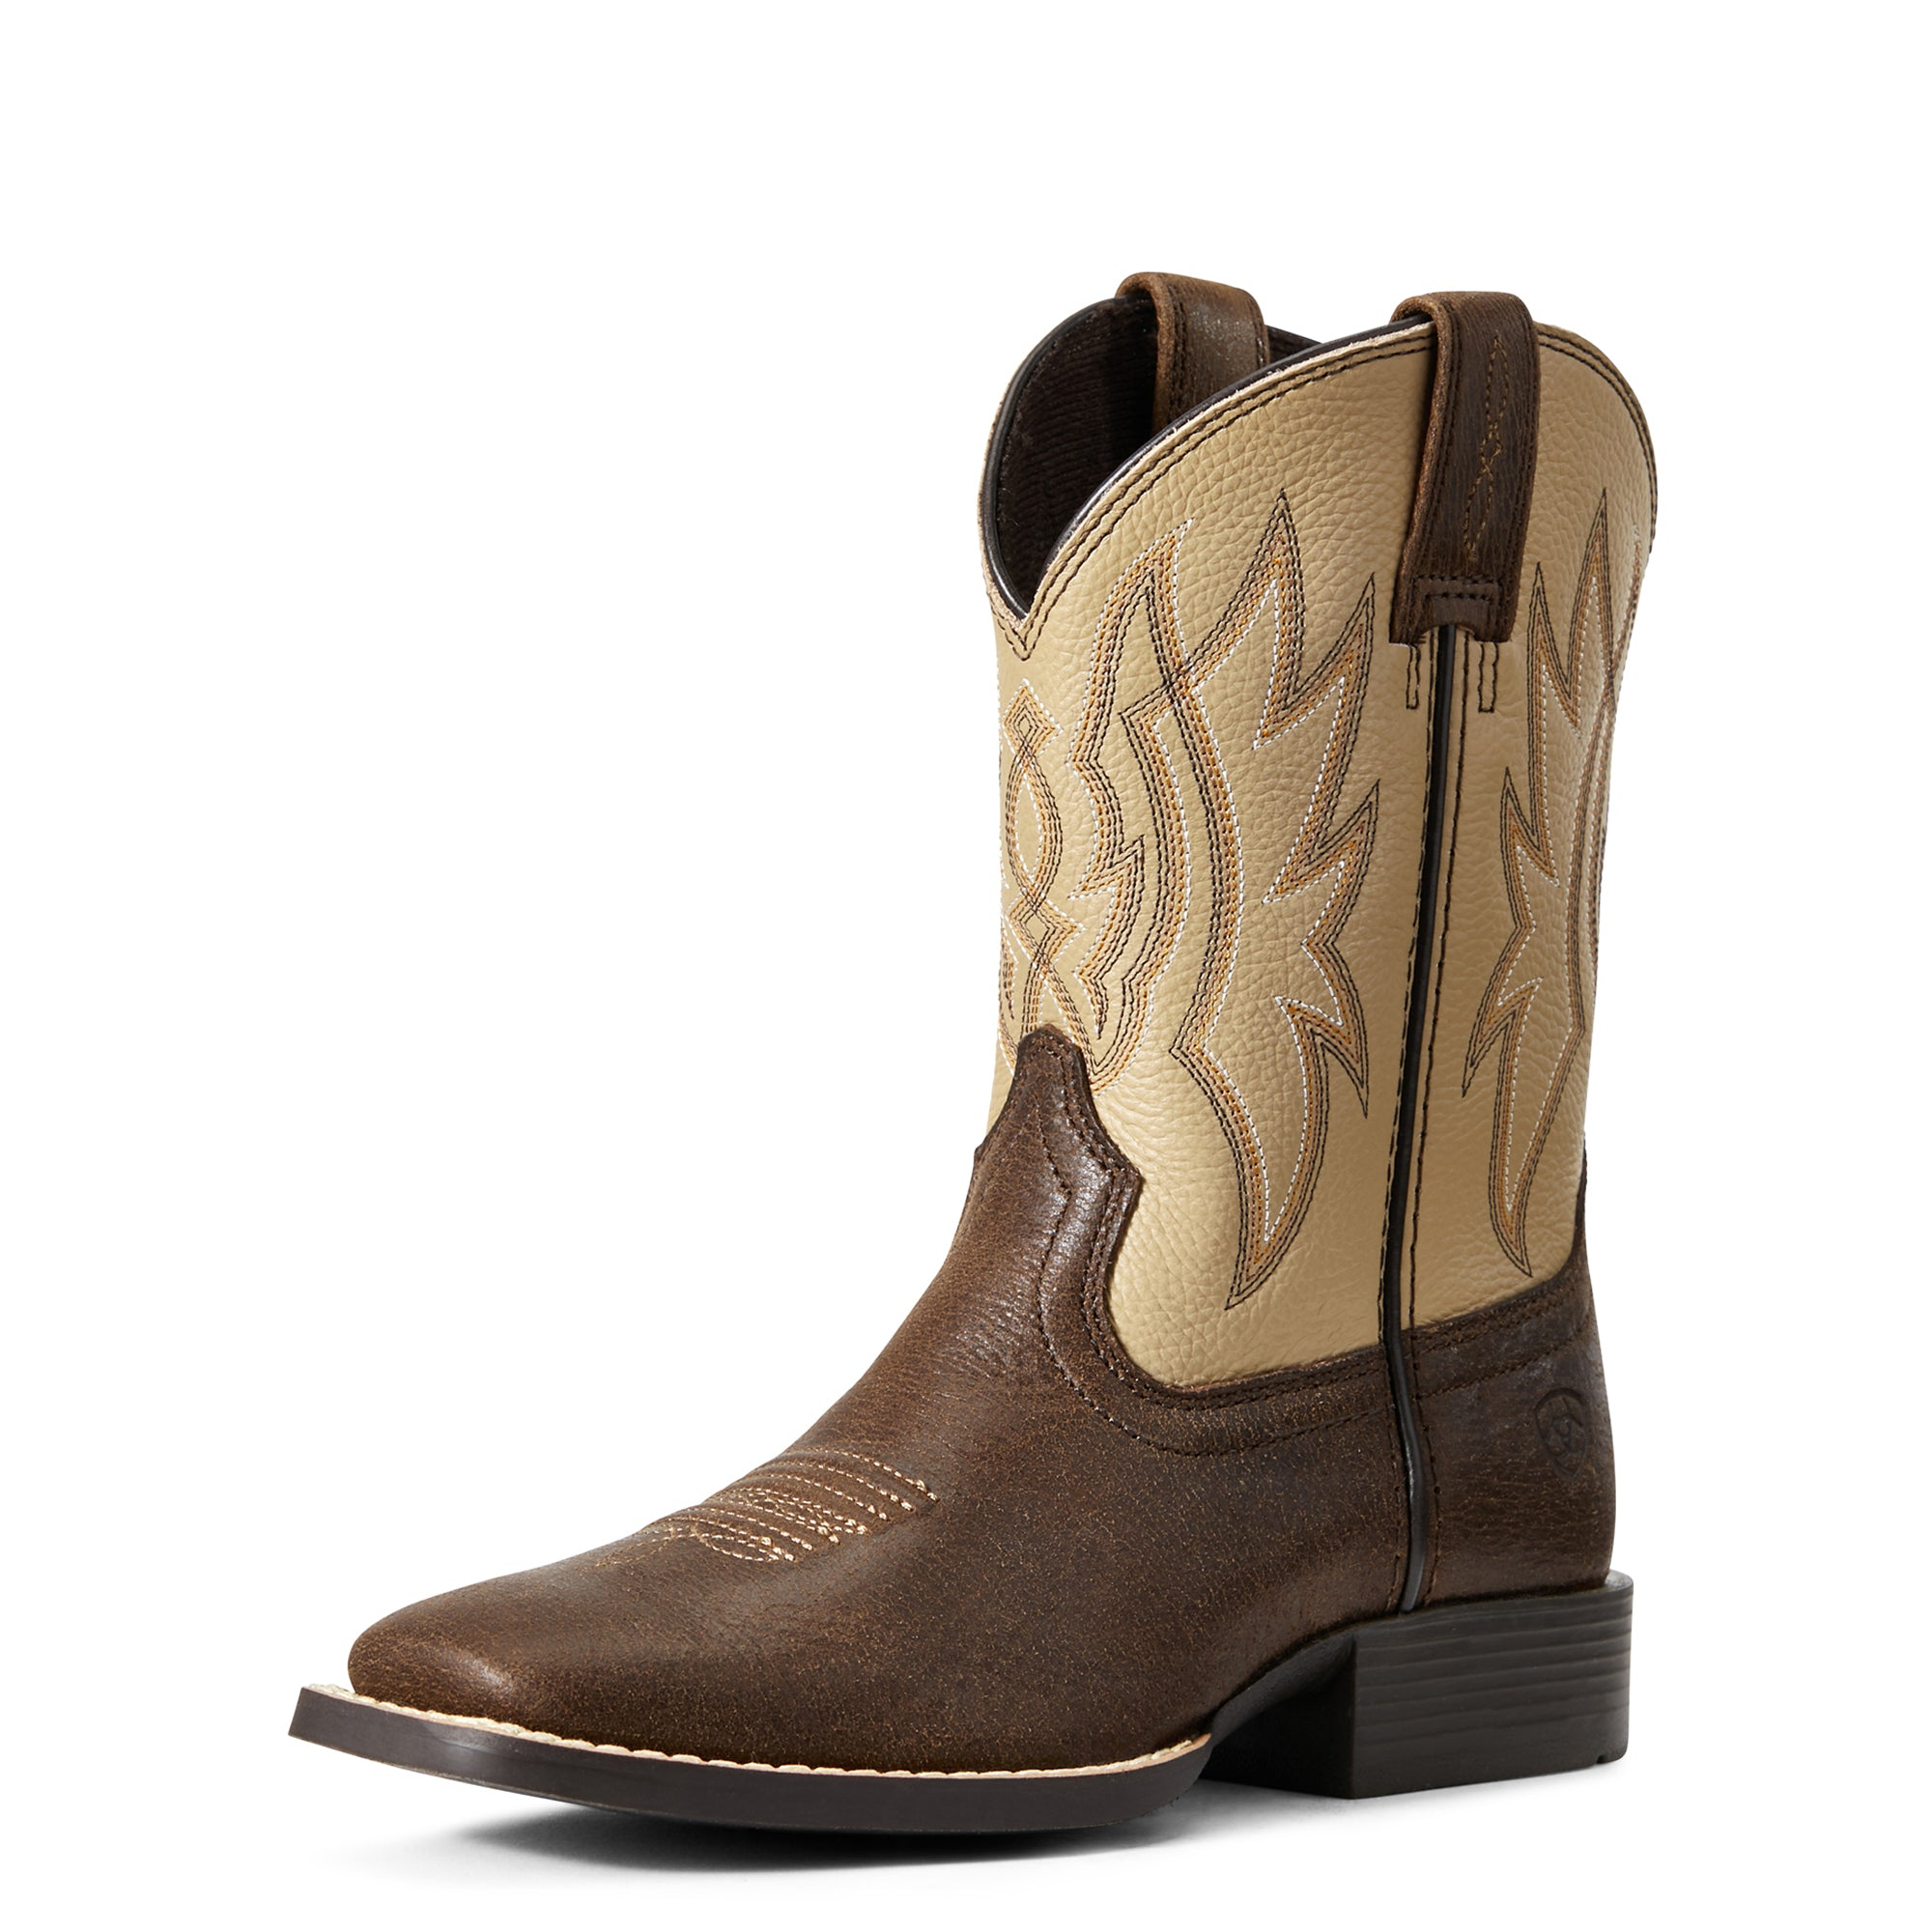 'Ariat' Youth Pace Setter - Timber / Rice Crispy